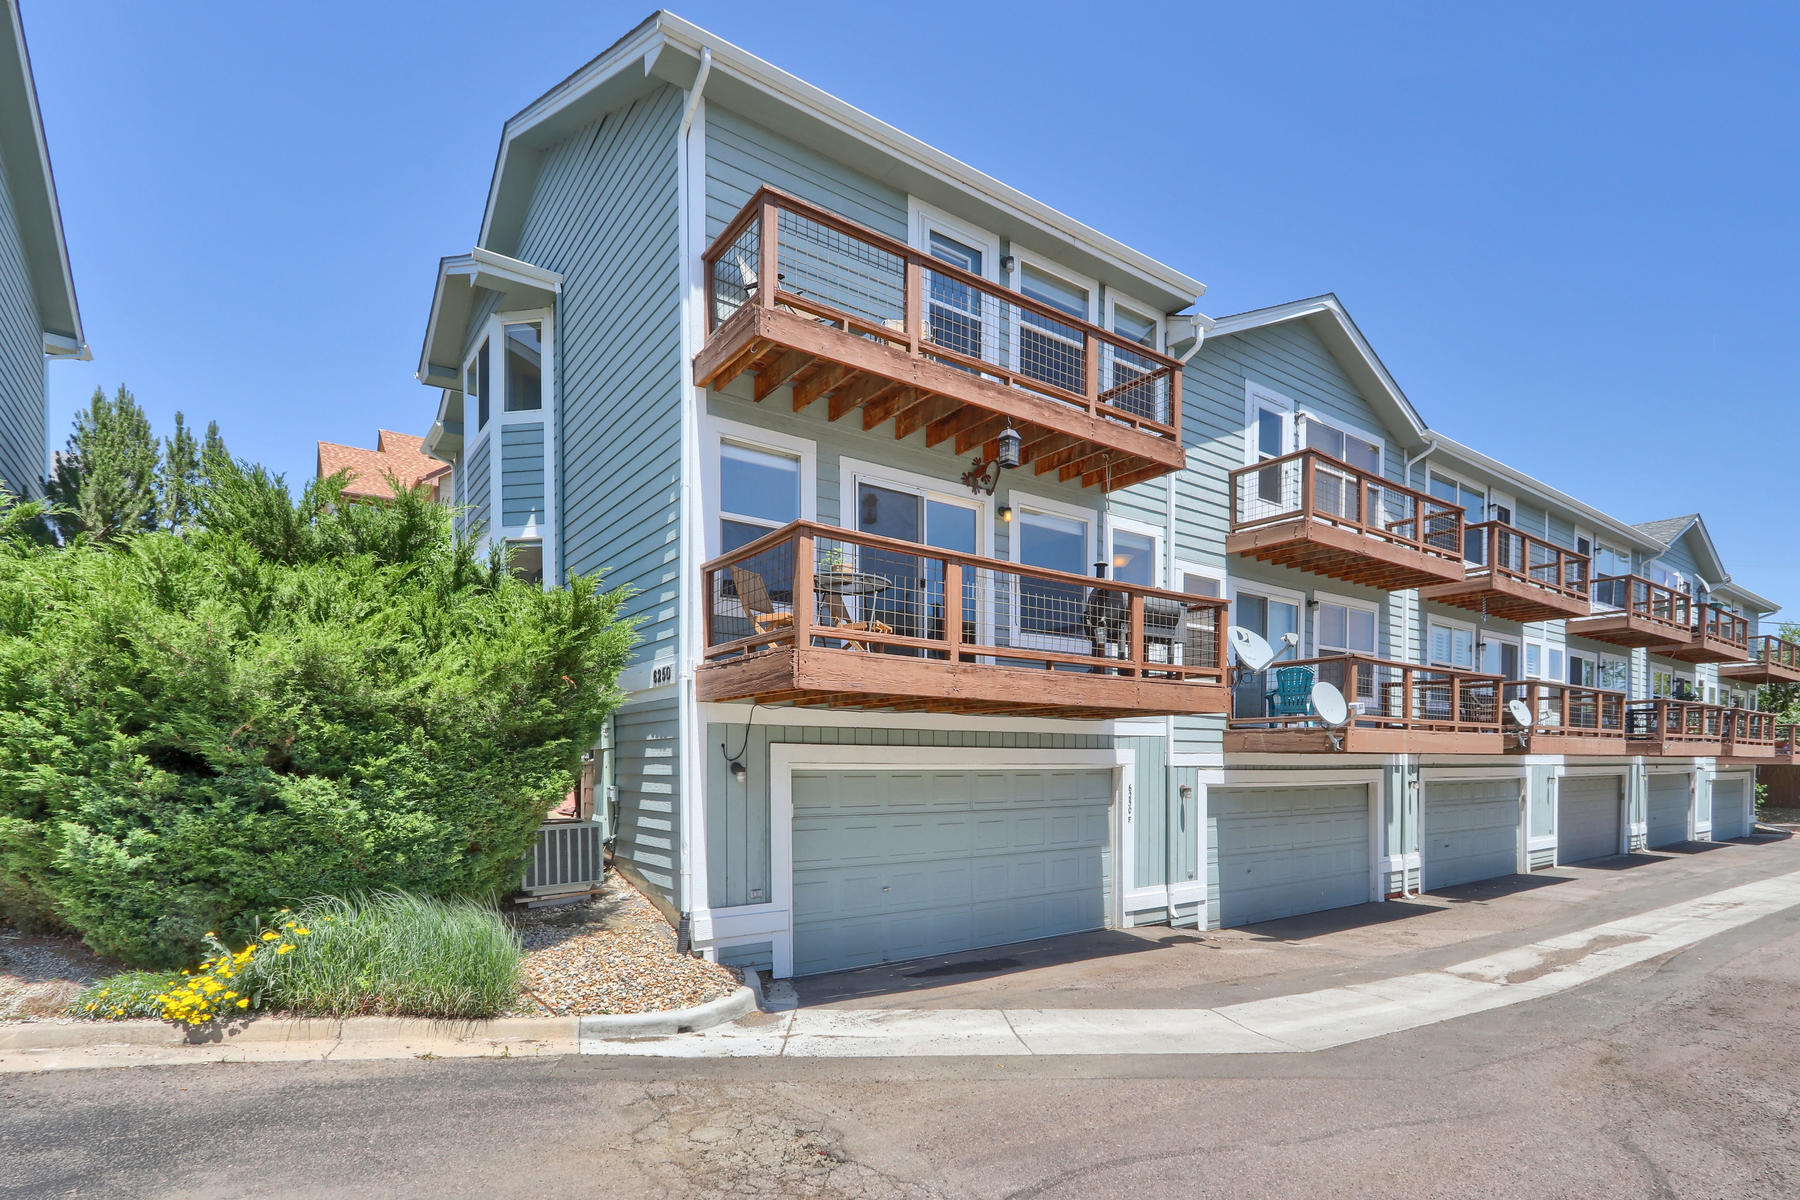 6250 Everett Ct Unit F Arvada-023-003-Exterior Back-MLS_Size.jpg